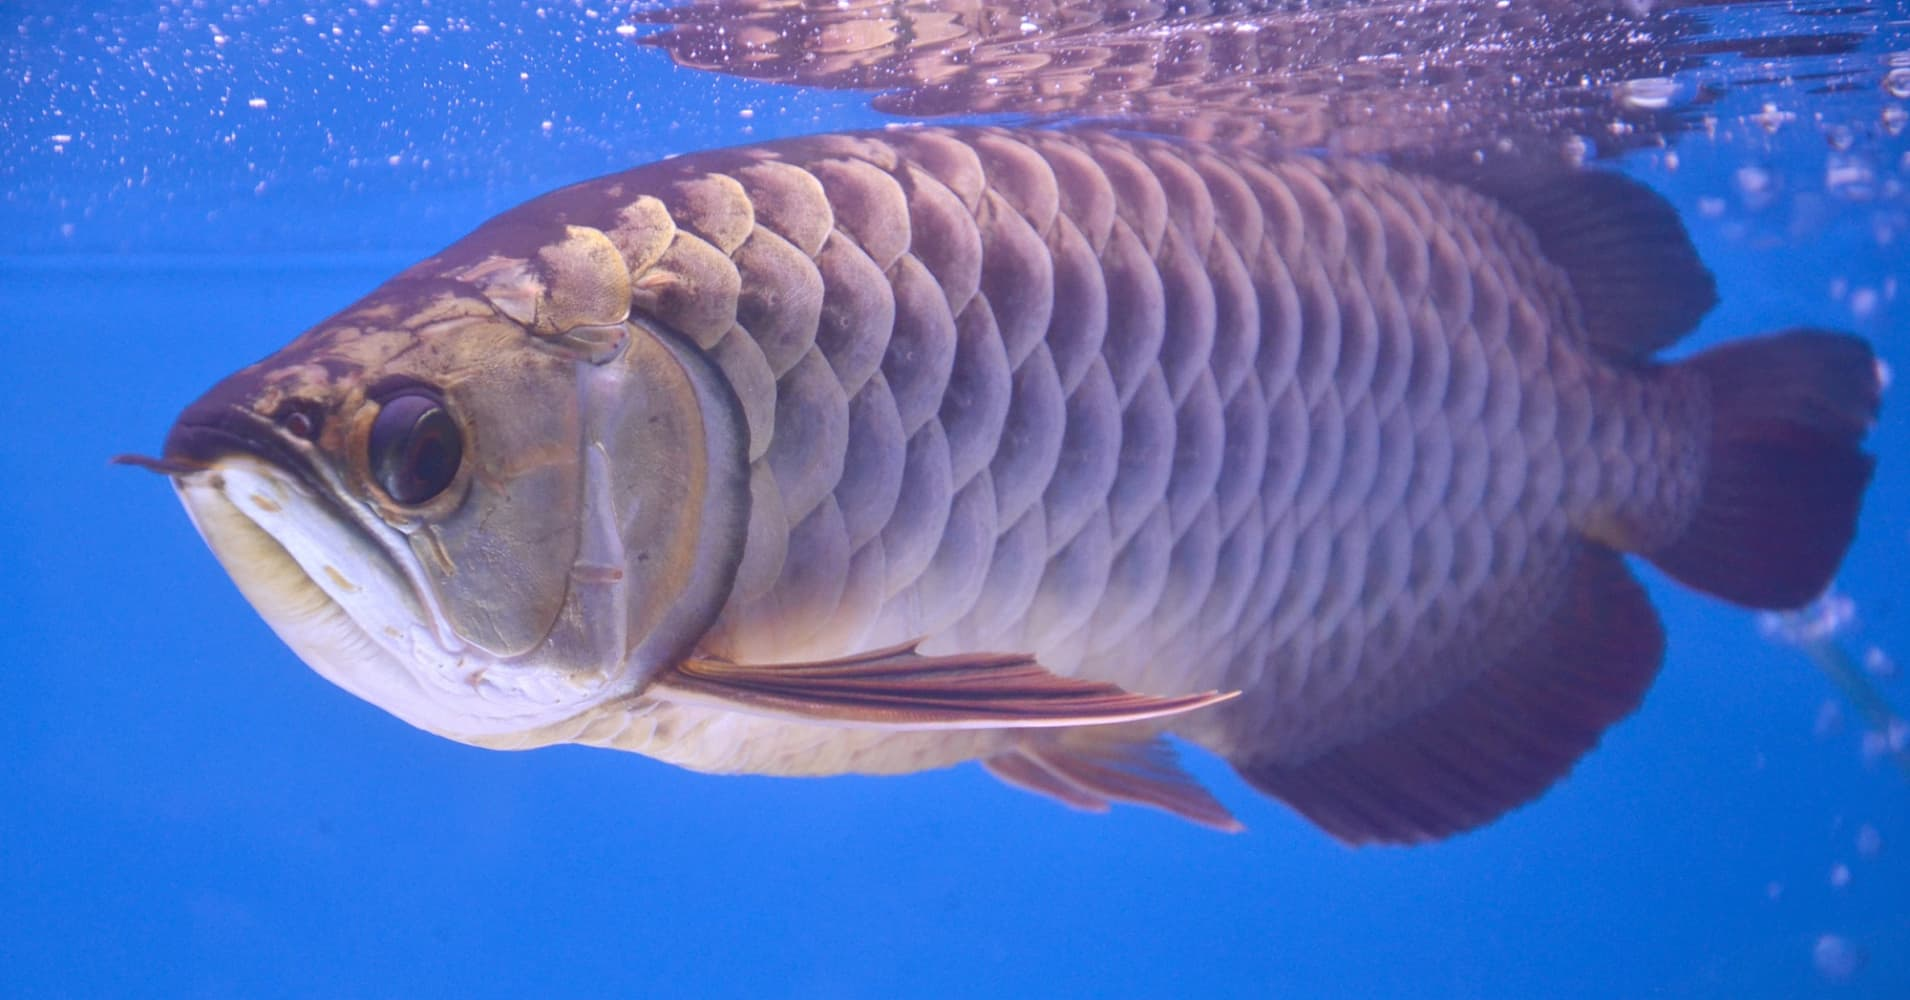 With its dragon shaped body and colorful scales, the Asian arowana has been dubbed Asia's favorite fish.